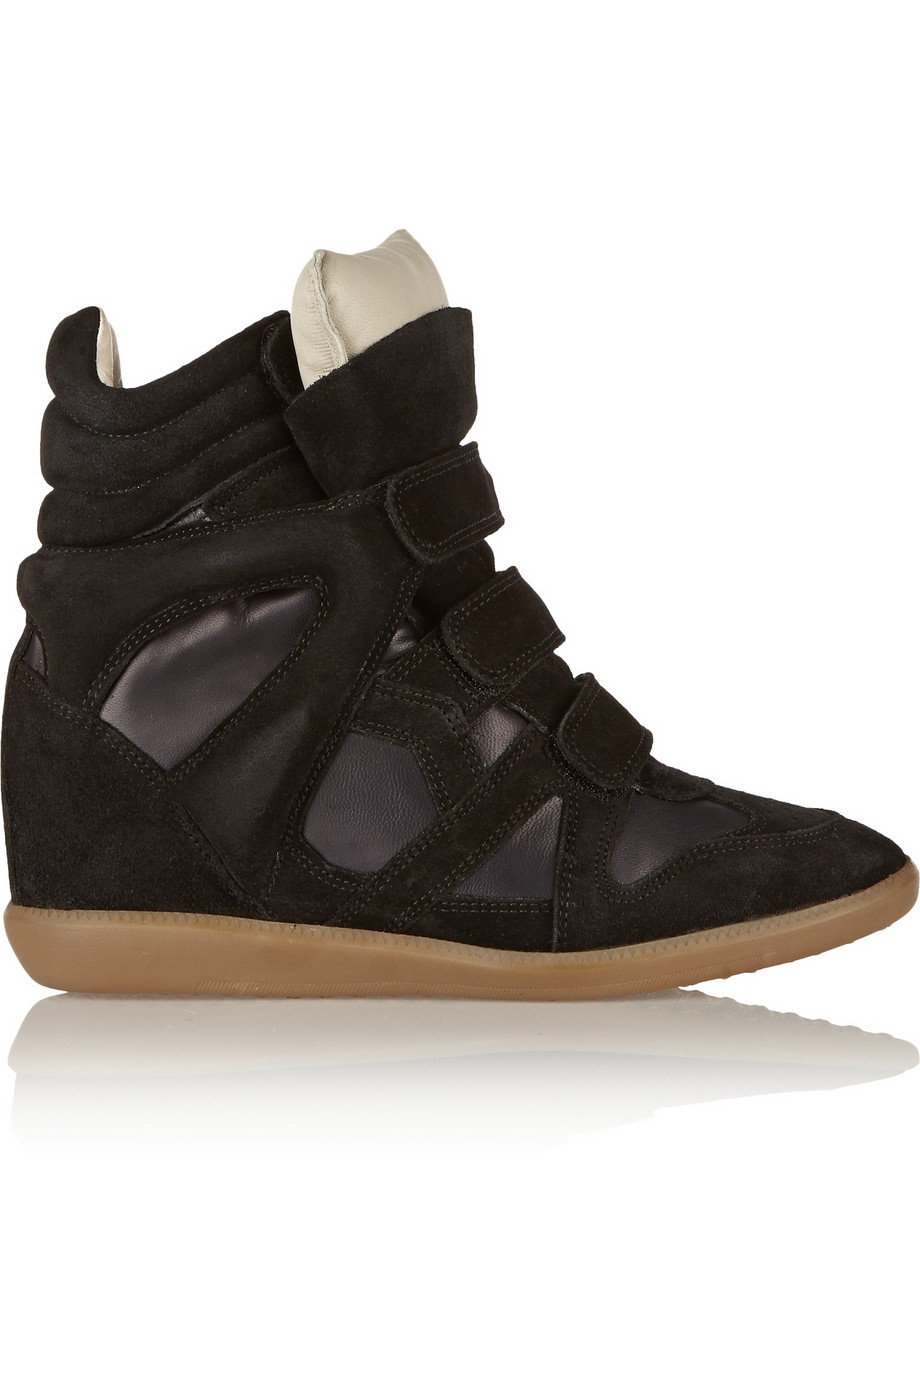 isabel marant burt suede and leather wedge sneakers in. Black Bedroom Furniture Sets. Home Design Ideas